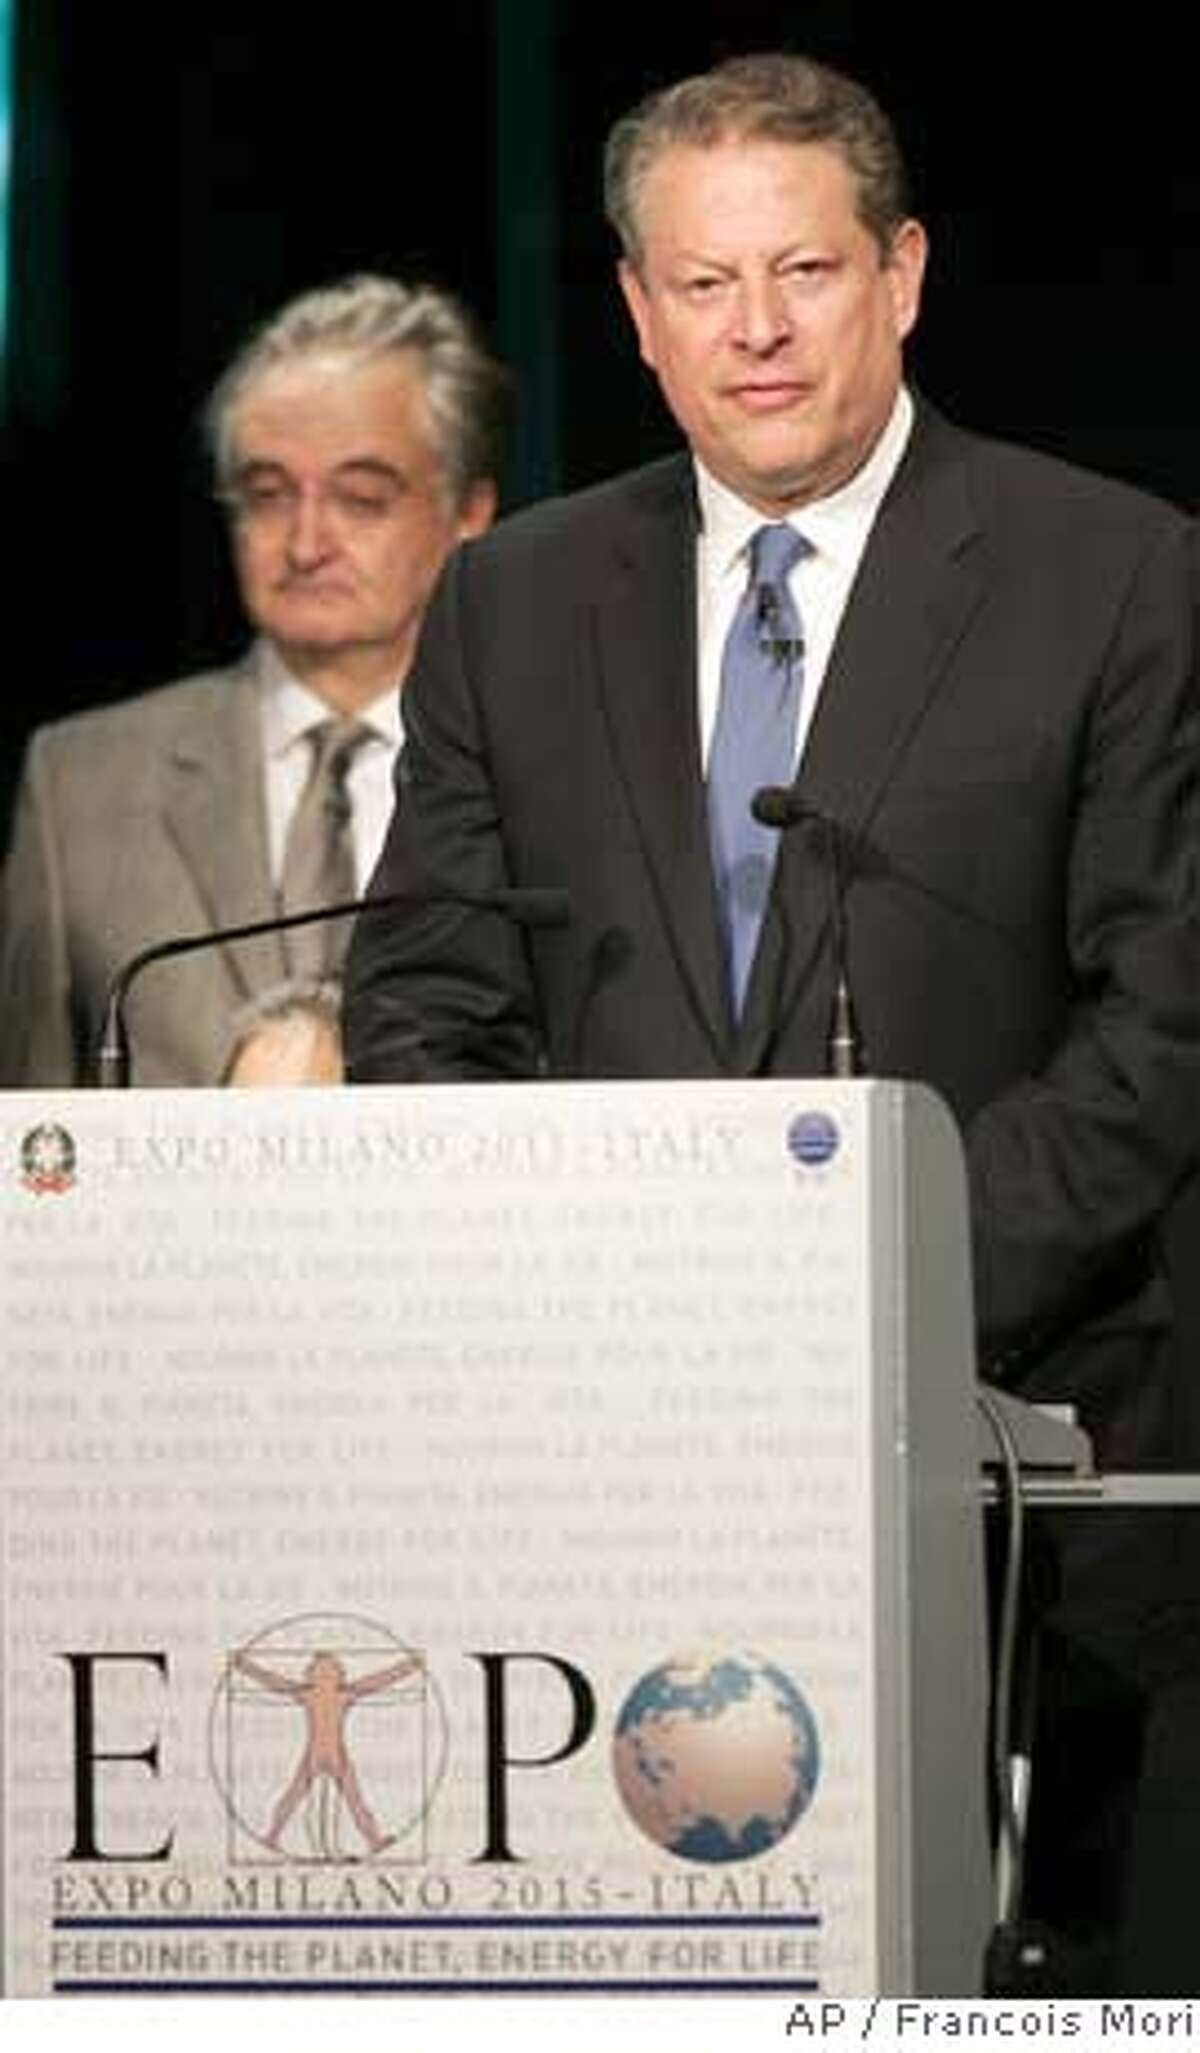 ###Live Caption:Former U.S. Vice President and Chairman of The Alliance for Climate Protection, Al Gore delivers his speech to support Milan's winning bid to host the 2015 World Fair during a ceremony of the International Bureau of Expositions in Paris, Monday, March 31, 2008. Milan, Italy and Izmir, Turkey, were the only two cities bidding to host the 2015 World Fair, as Zaragoza, Spain, is hosting the event in 2008, and Shanghai, China, will be hosting it in 2010. (AP Photo/Francois Mori)###Caption History:Former U.S. Vice President and Chairman of The Alliance for Climate Protection, Al Gore delivers his speech to support Milan's winning bid to host the 2015 World Fair during a ceremony of the International Bureau of Expositions in Paris, Monday, March 31, 2008. Milan, Italy and Izmir, Turkey, were the only two cities bidding to host the 2015 World Fair, as Zaragoza, Spain, is hosting the event in 2008, and Shanghai, China, will be hosting it in 2010. (AP Photo/Francois Mori)###Notes:Al Gore###Special Instructions: